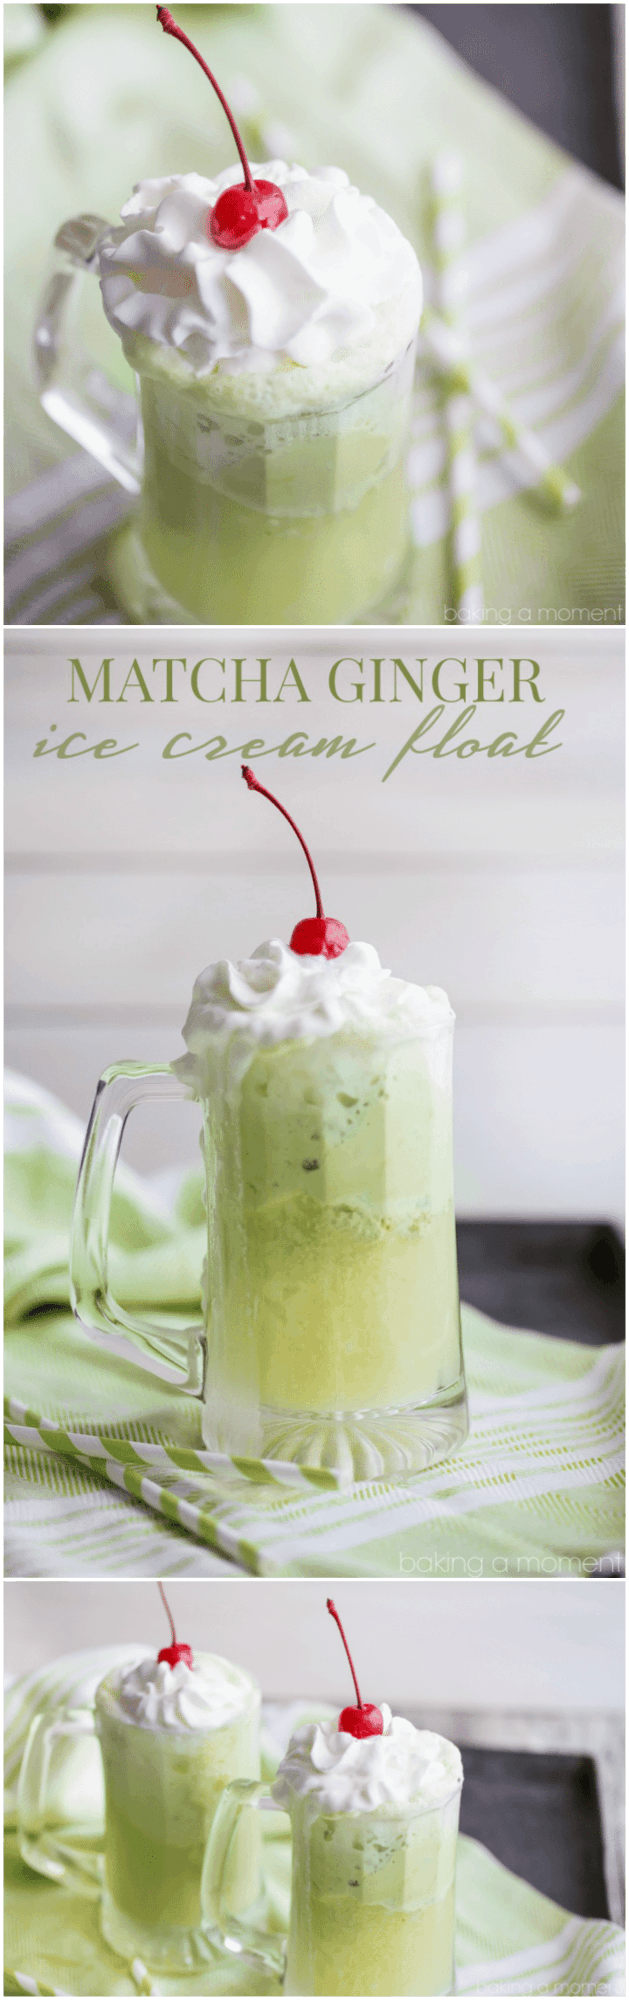 Loved the flavor combination in this Matcha Ginger Ice Cream Float! Definitely will be making this for St. Patrick's Day ;)